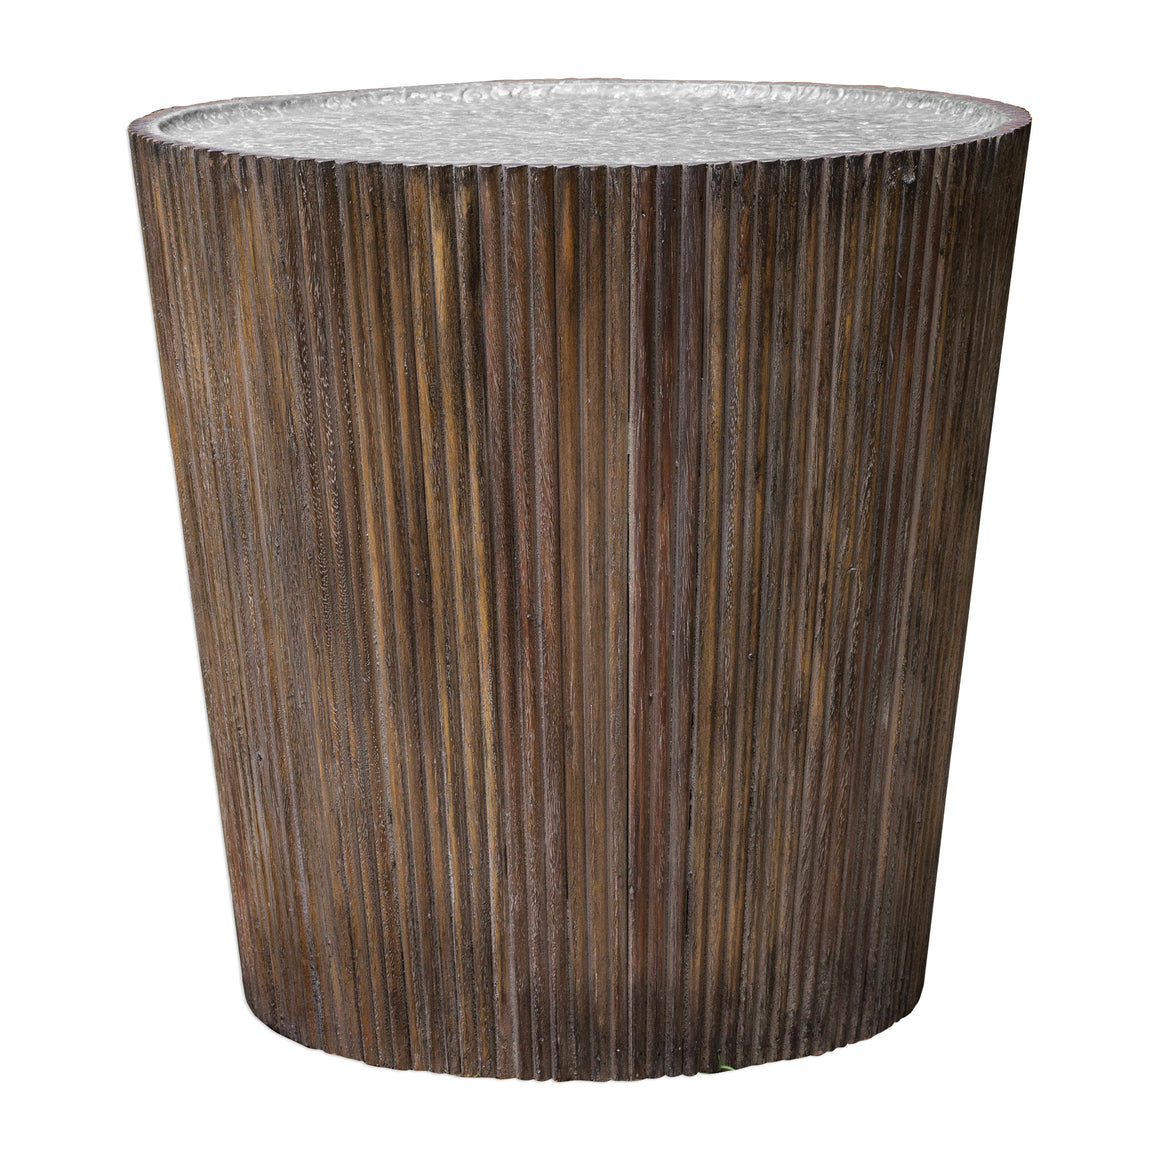 Amra Reeded Round Accent Table